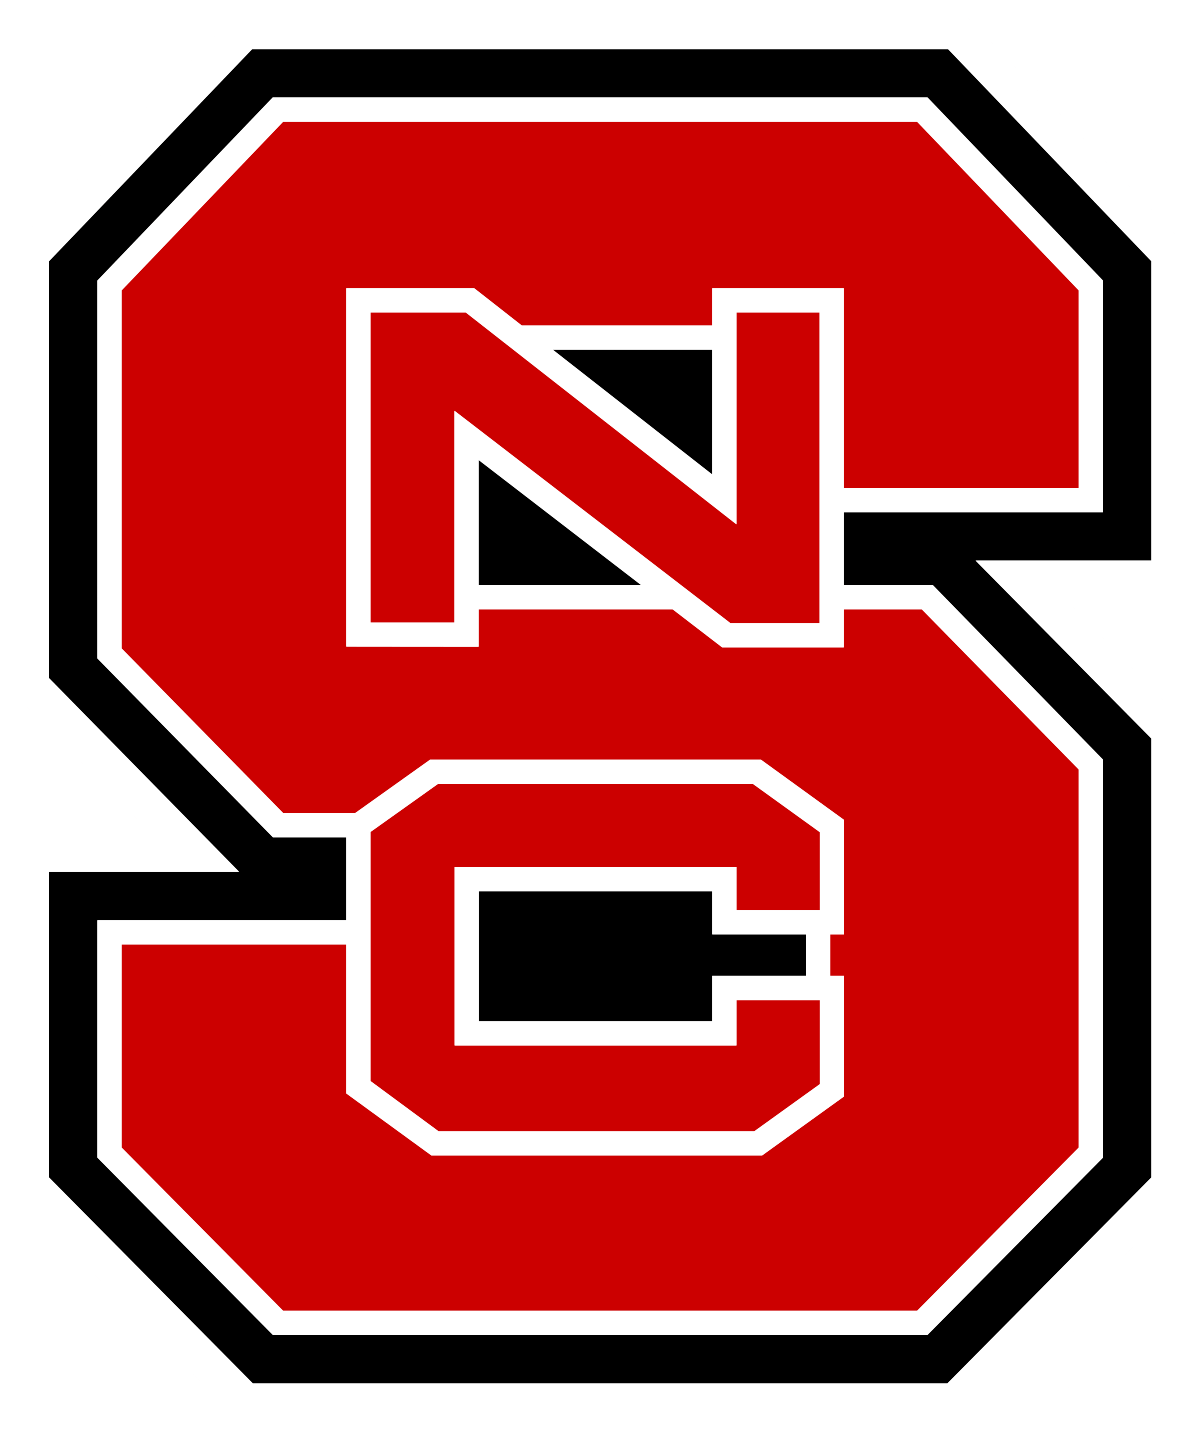 North_Carolina_State_University_Athletic_logo.svg_415519